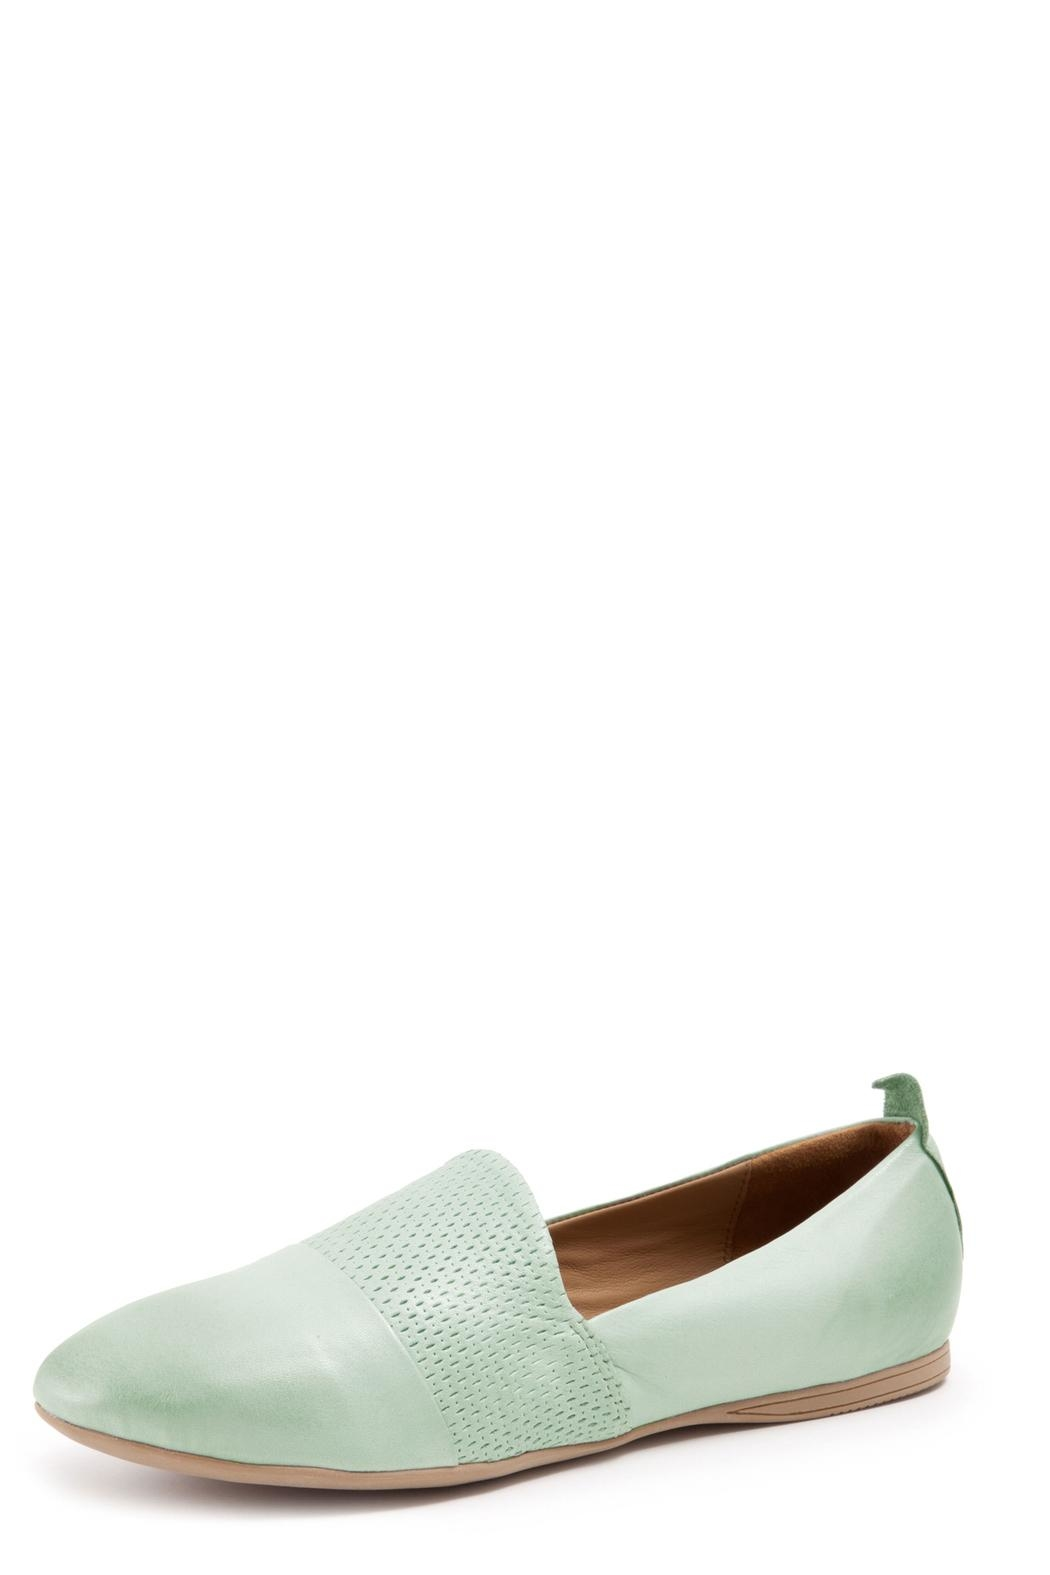 Bueno Shoes Leather Flat Shoe - Front Cropped Image